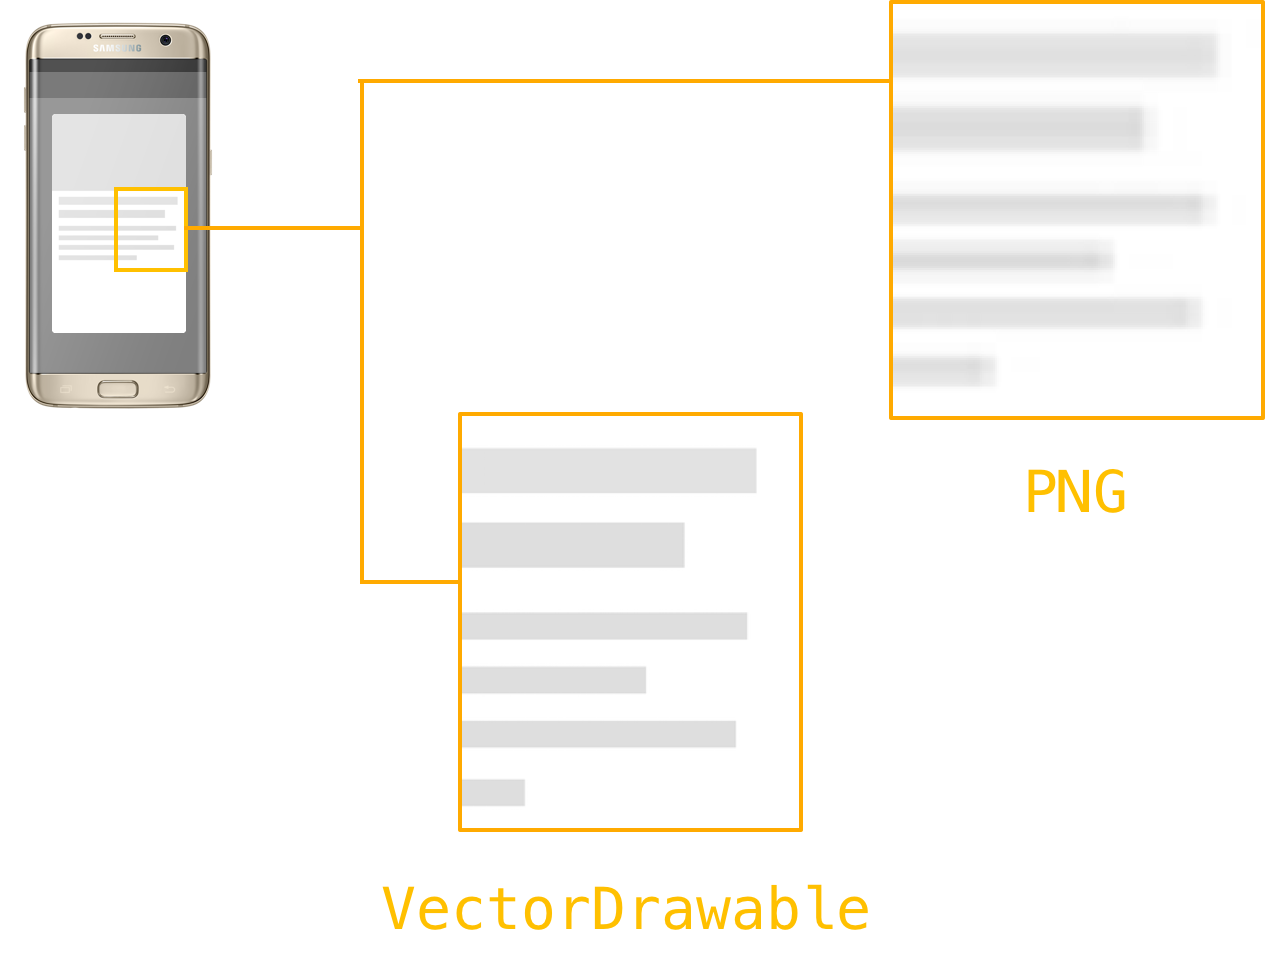 Optimizing the performance of. Android drawable png graphic black and white